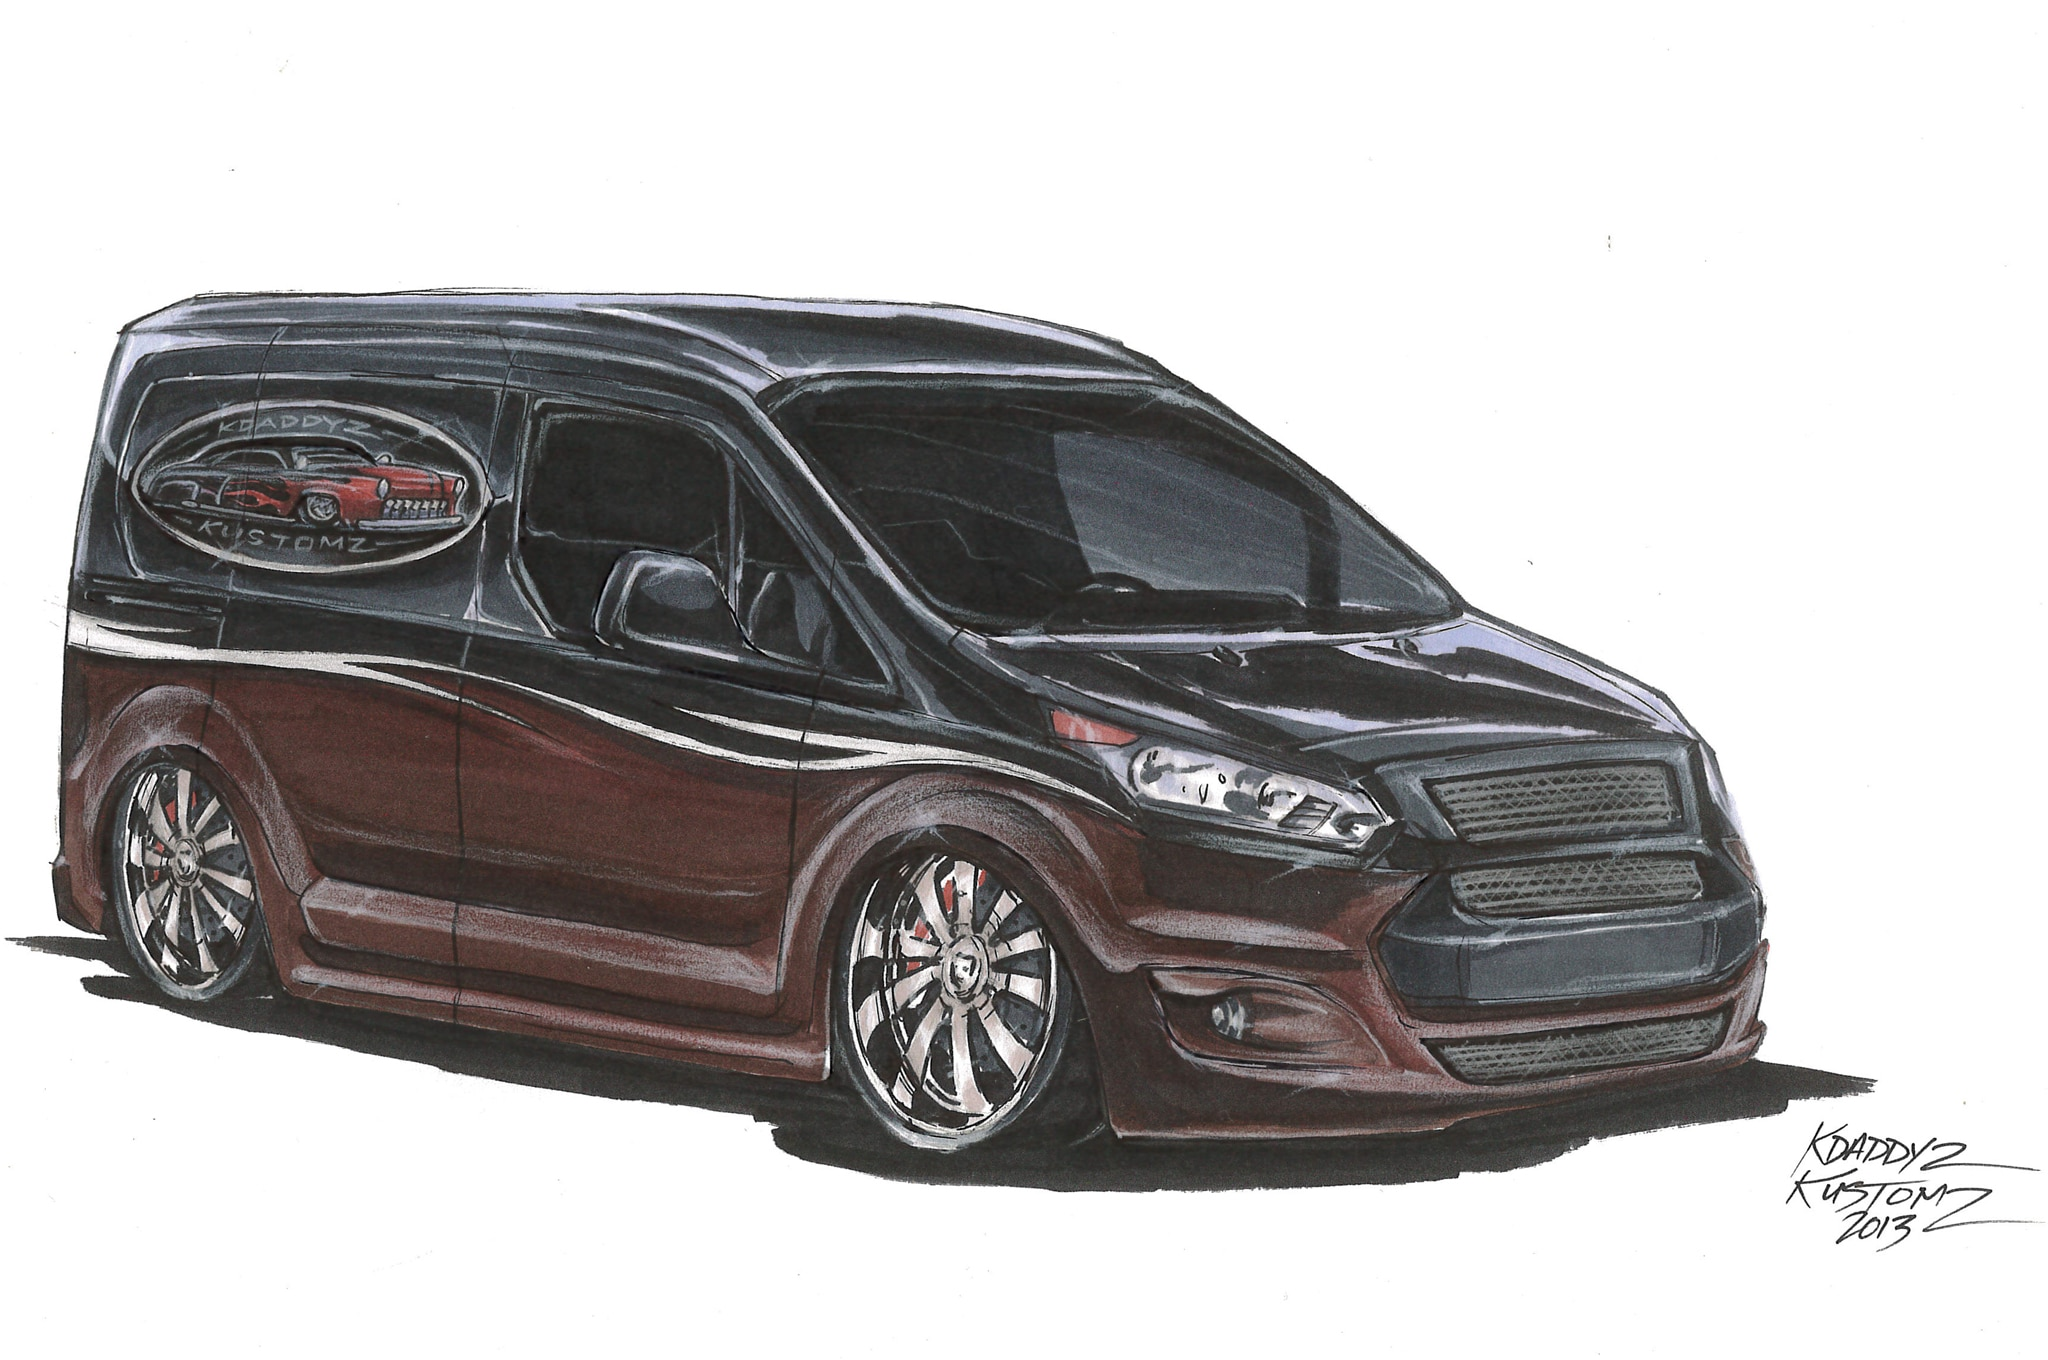 Transit Connect Modified >> 2014 Ford Transit Connect Vans Modified For 2013 SEMA Show